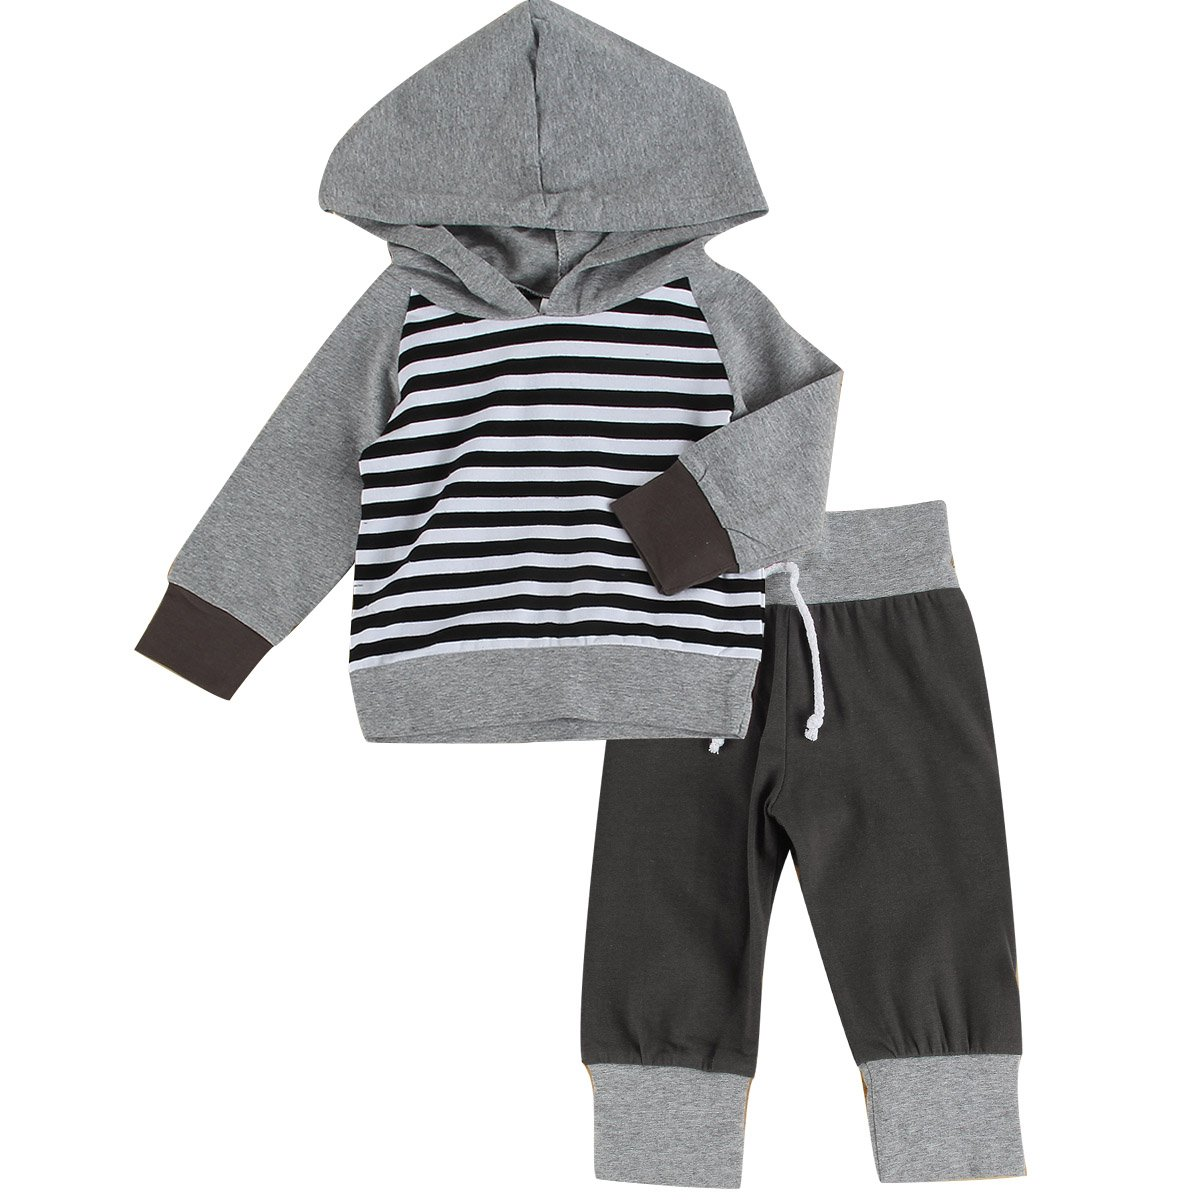 Puseky Baby Boys Grils Striped Hooded Sweatshirt & Pants Tracksuit Outfits Set (6-12 Months, Grey)